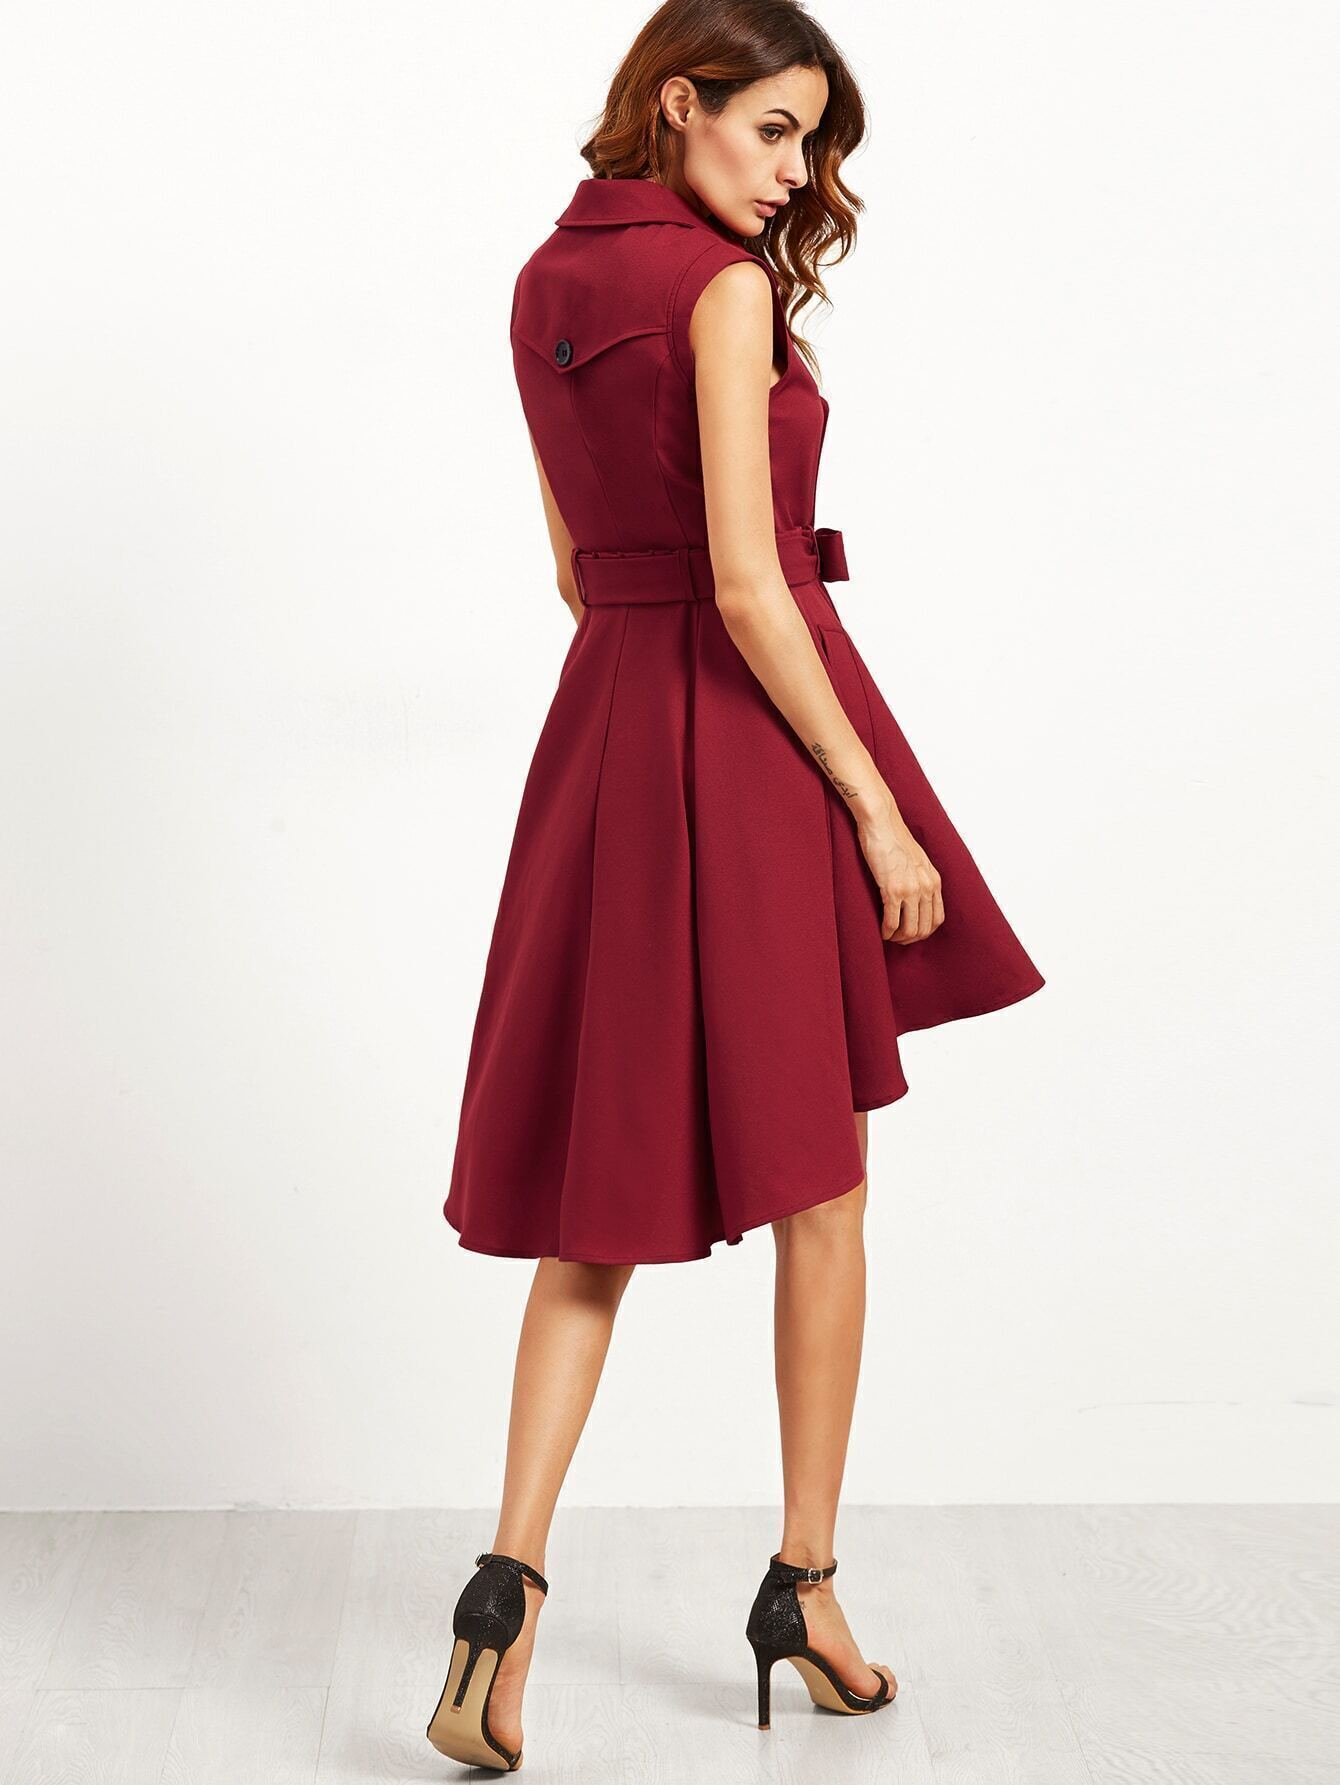 4fb099983163a Burgundy Double Breasted Belted Sleeveless Trench Dress EmmaCloth-Women  Fast Fashion Online